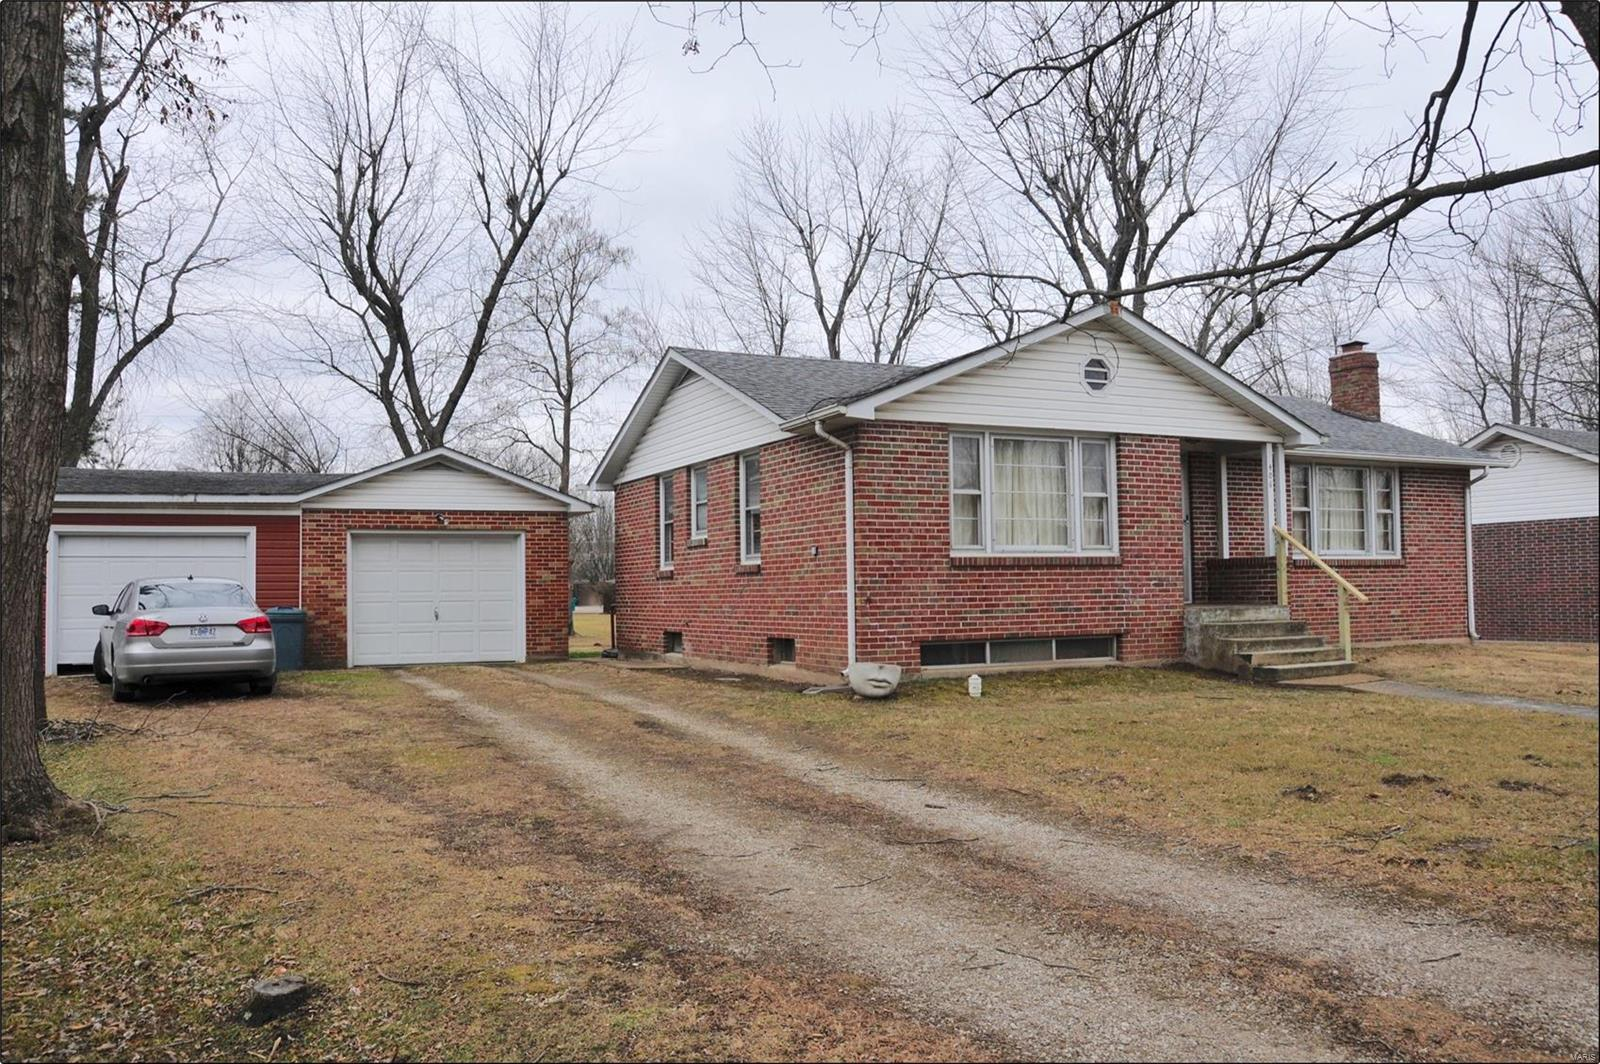 406 S. TELLMAN AVE. Property Photo - Belle, MO real estate listing